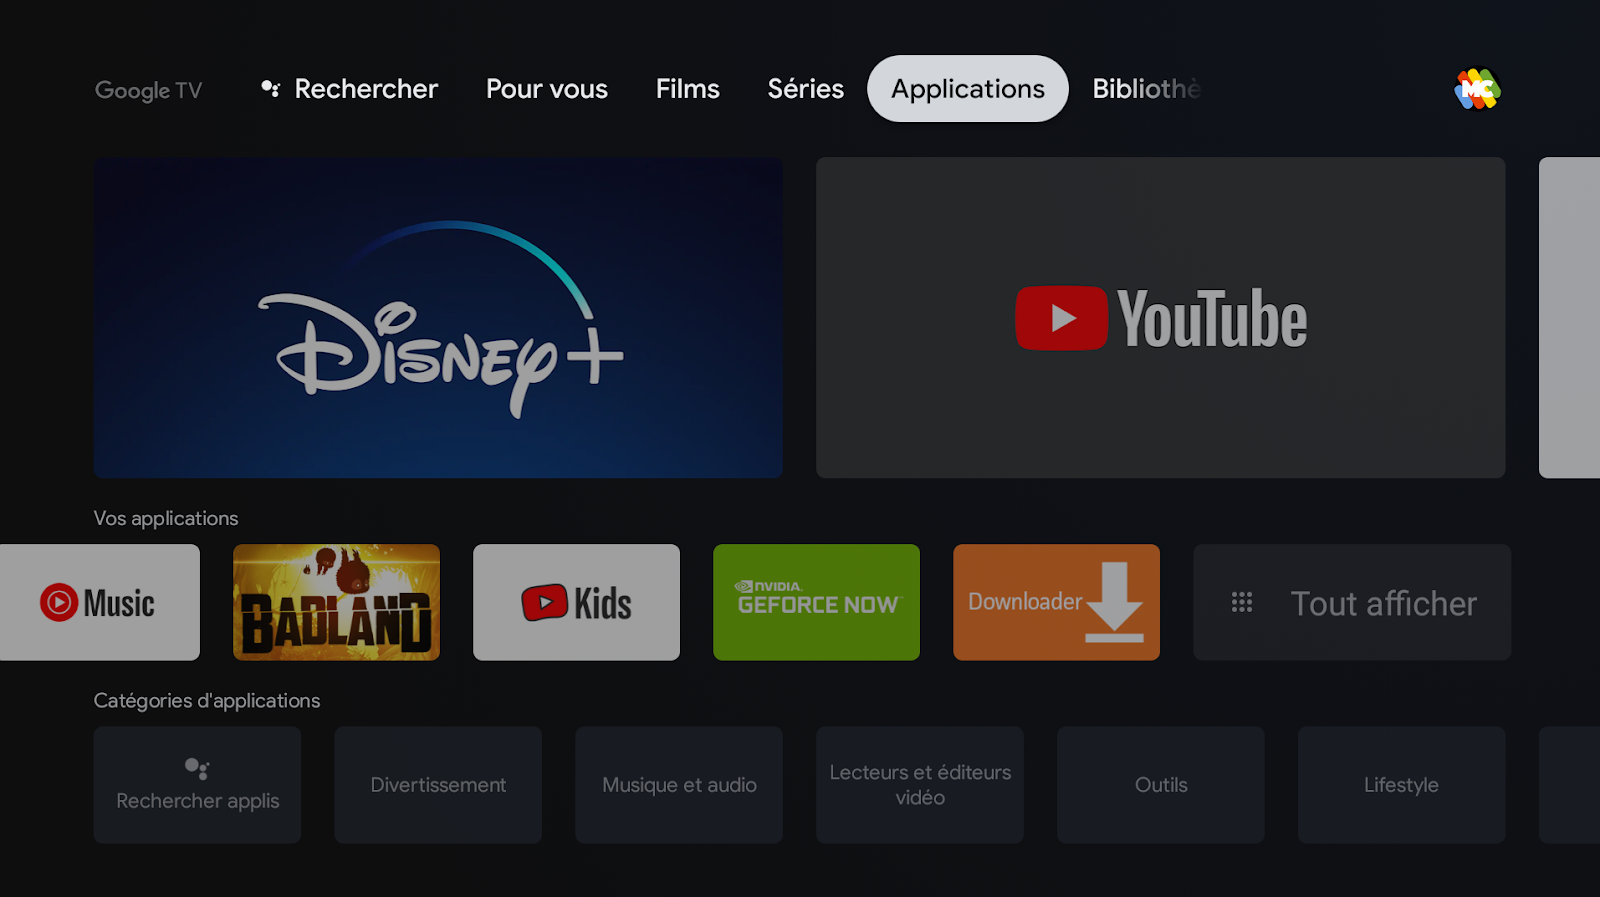 Accueil Mes applications de Google TV